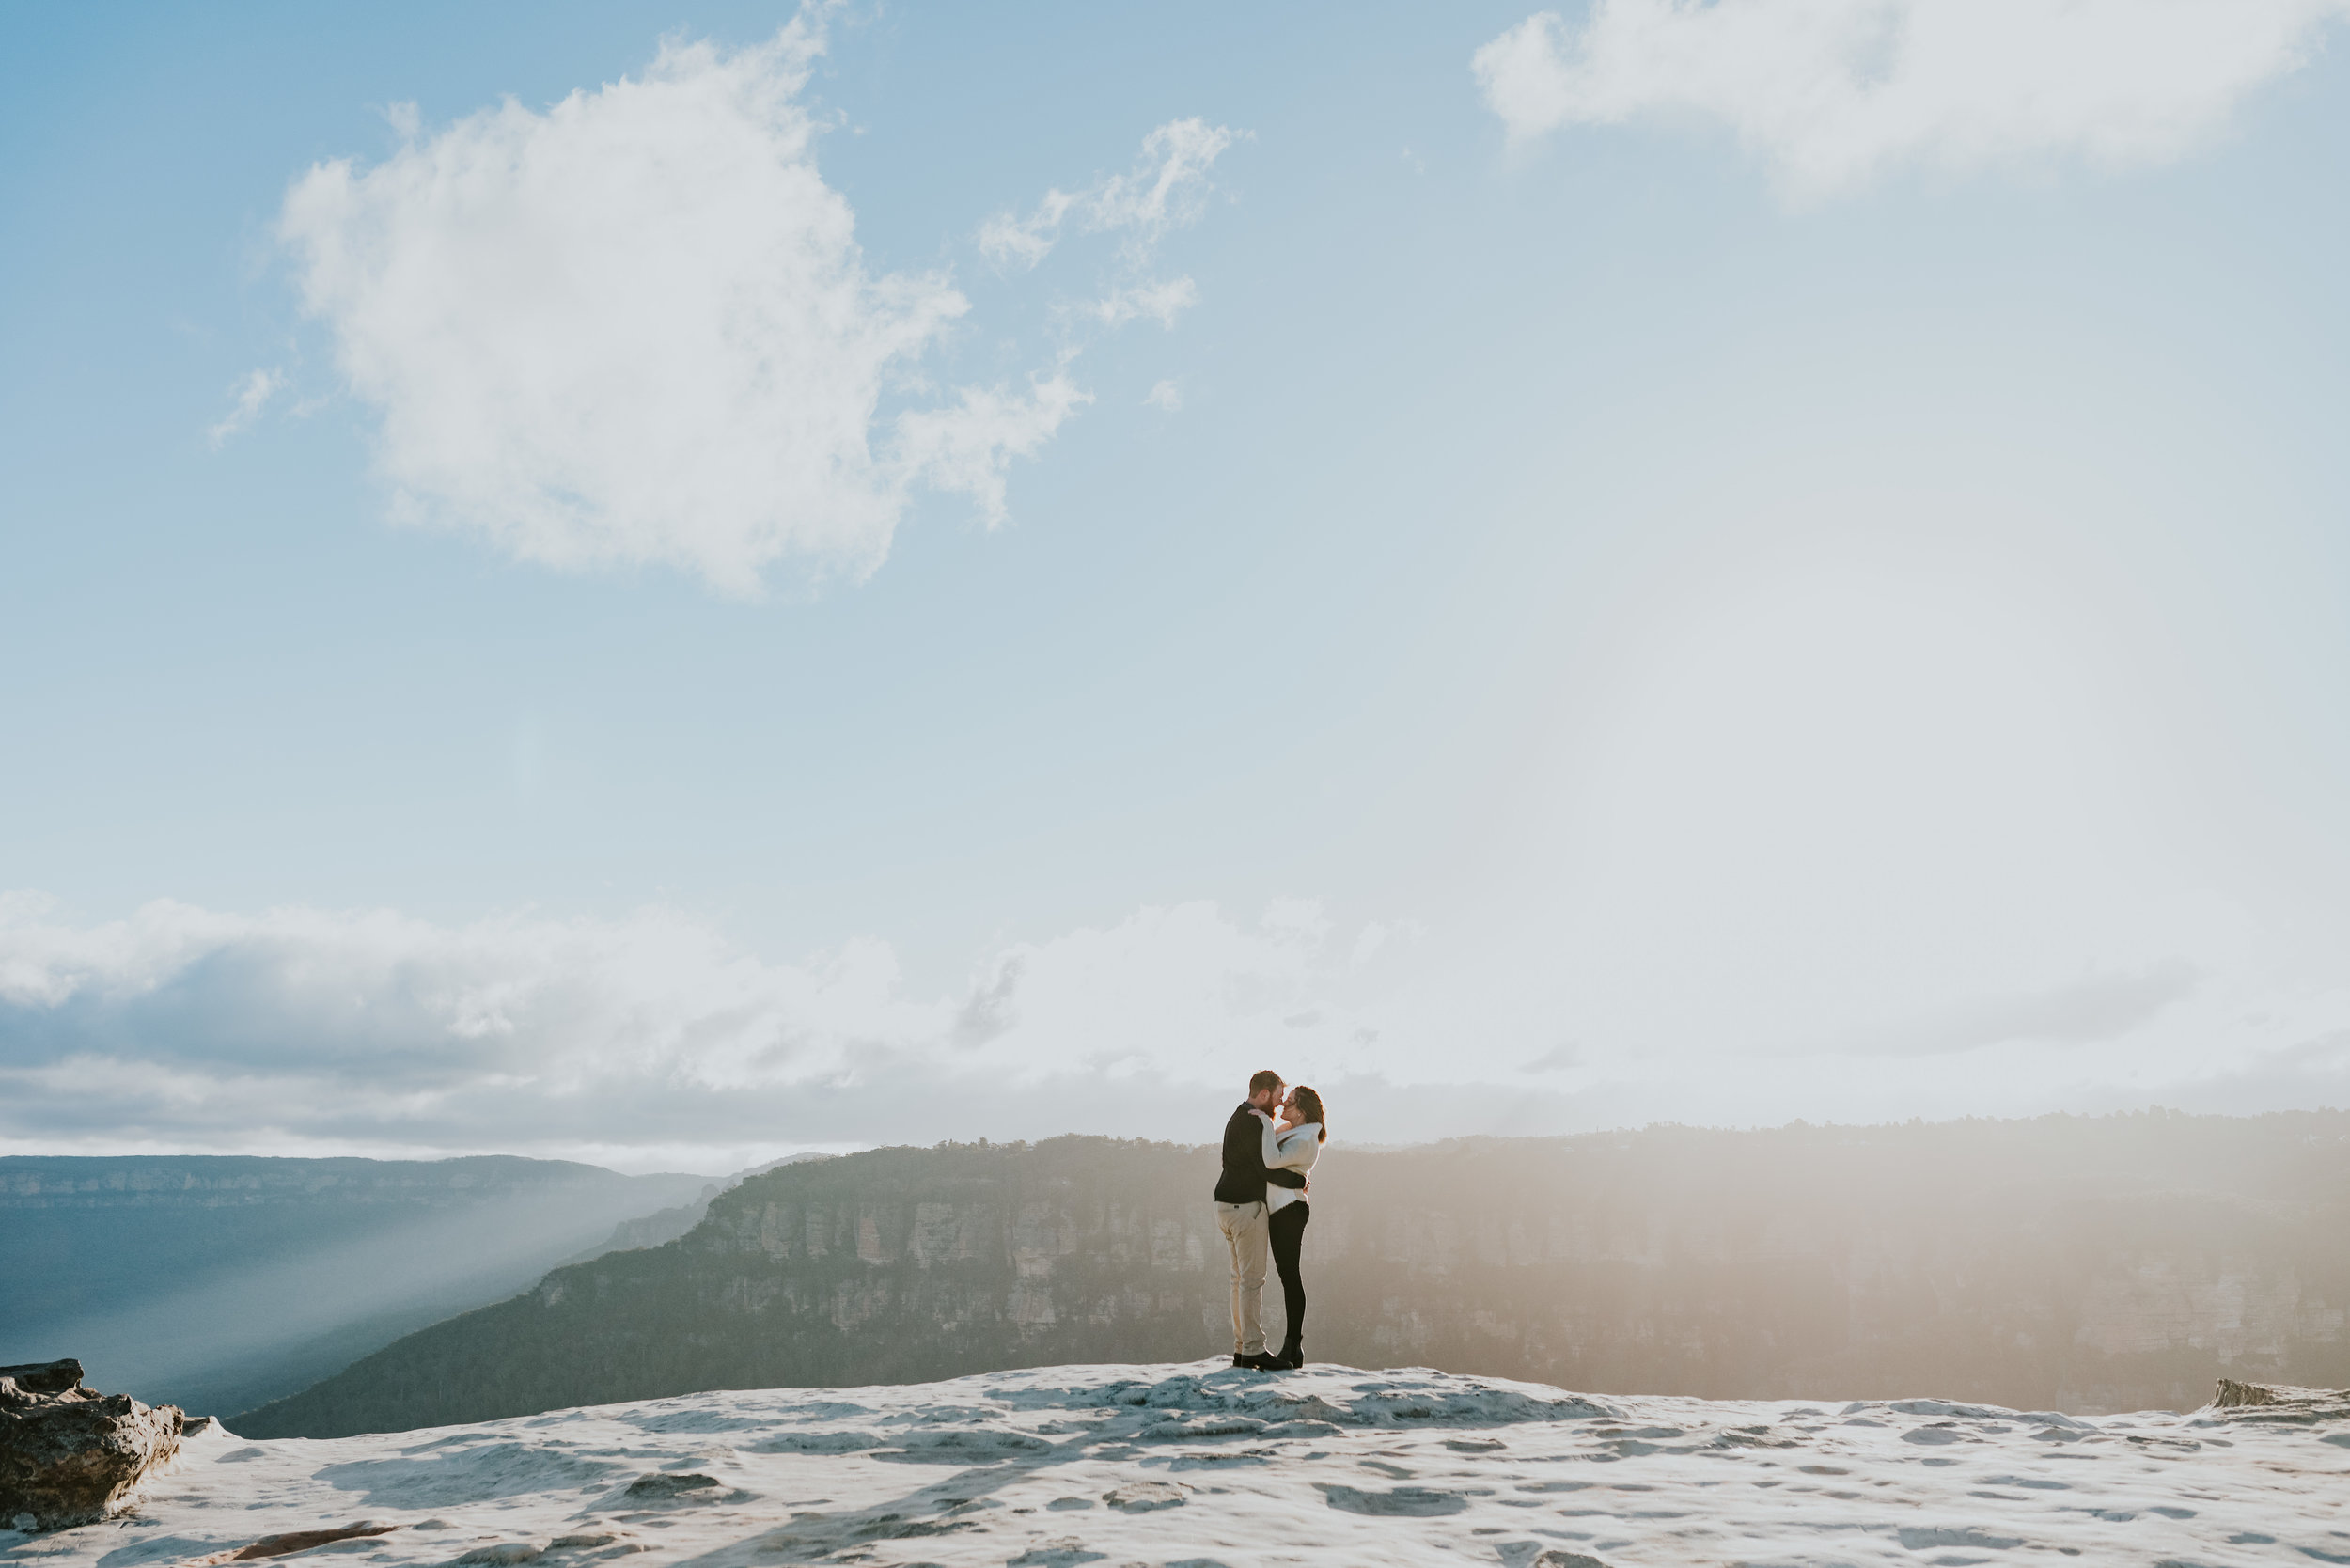 Sophie & Doug - Lincoln's Rock, Blue Mountains Engagement    14th July 2019